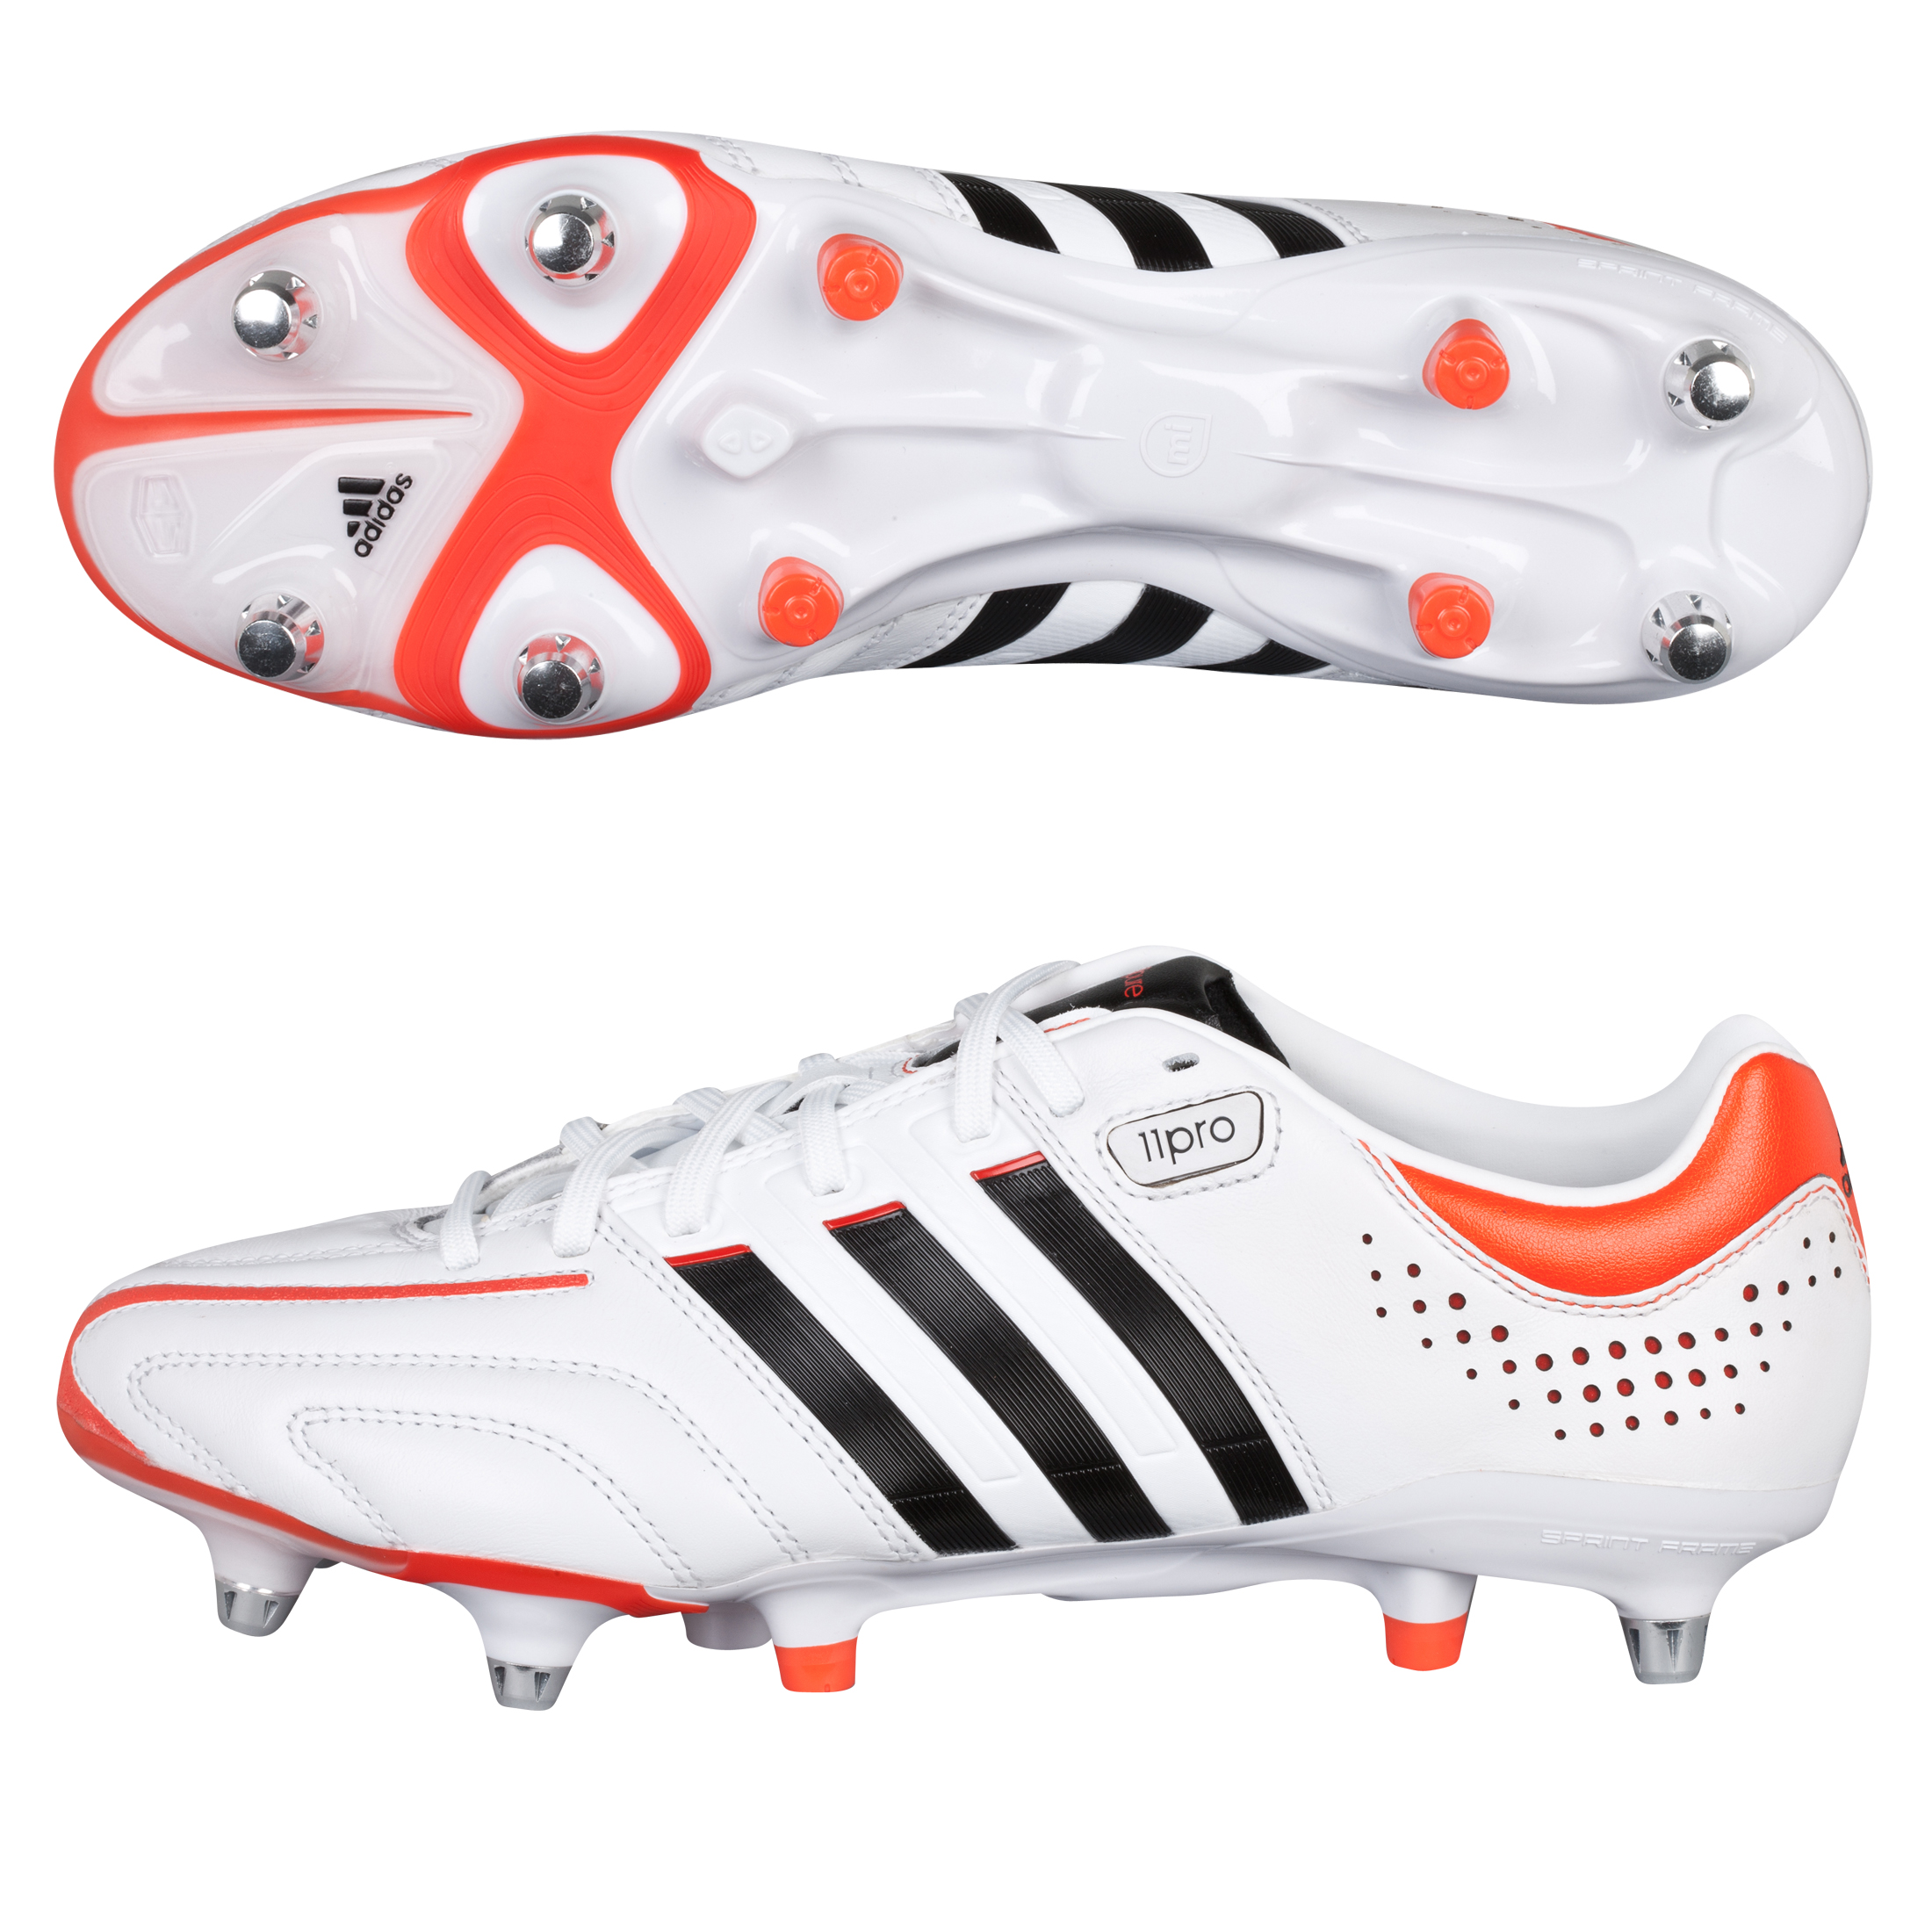 adipure 11Pro XTRX SG Running White/Black 1/High Energy S12